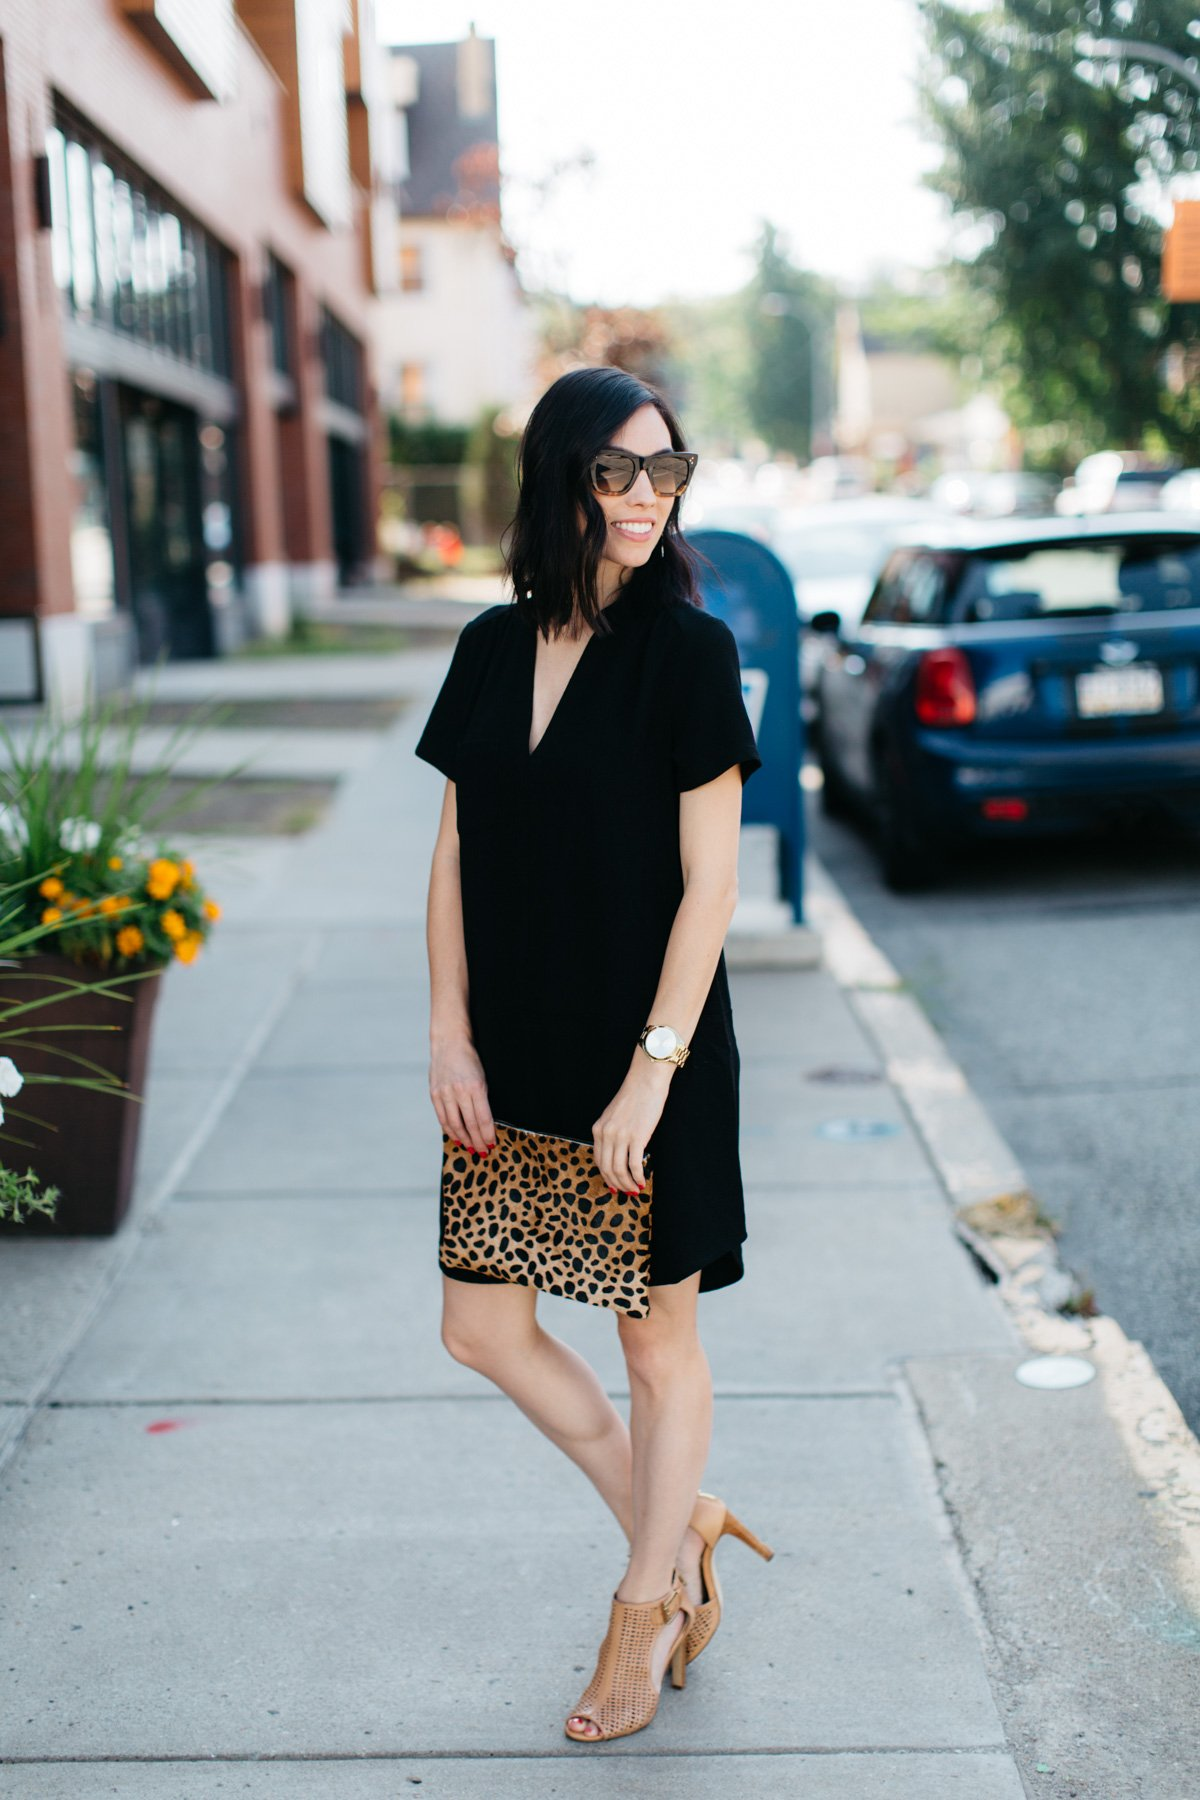 lbd-wellesleyandking-pittsburghblogger-pittsburghphotographer